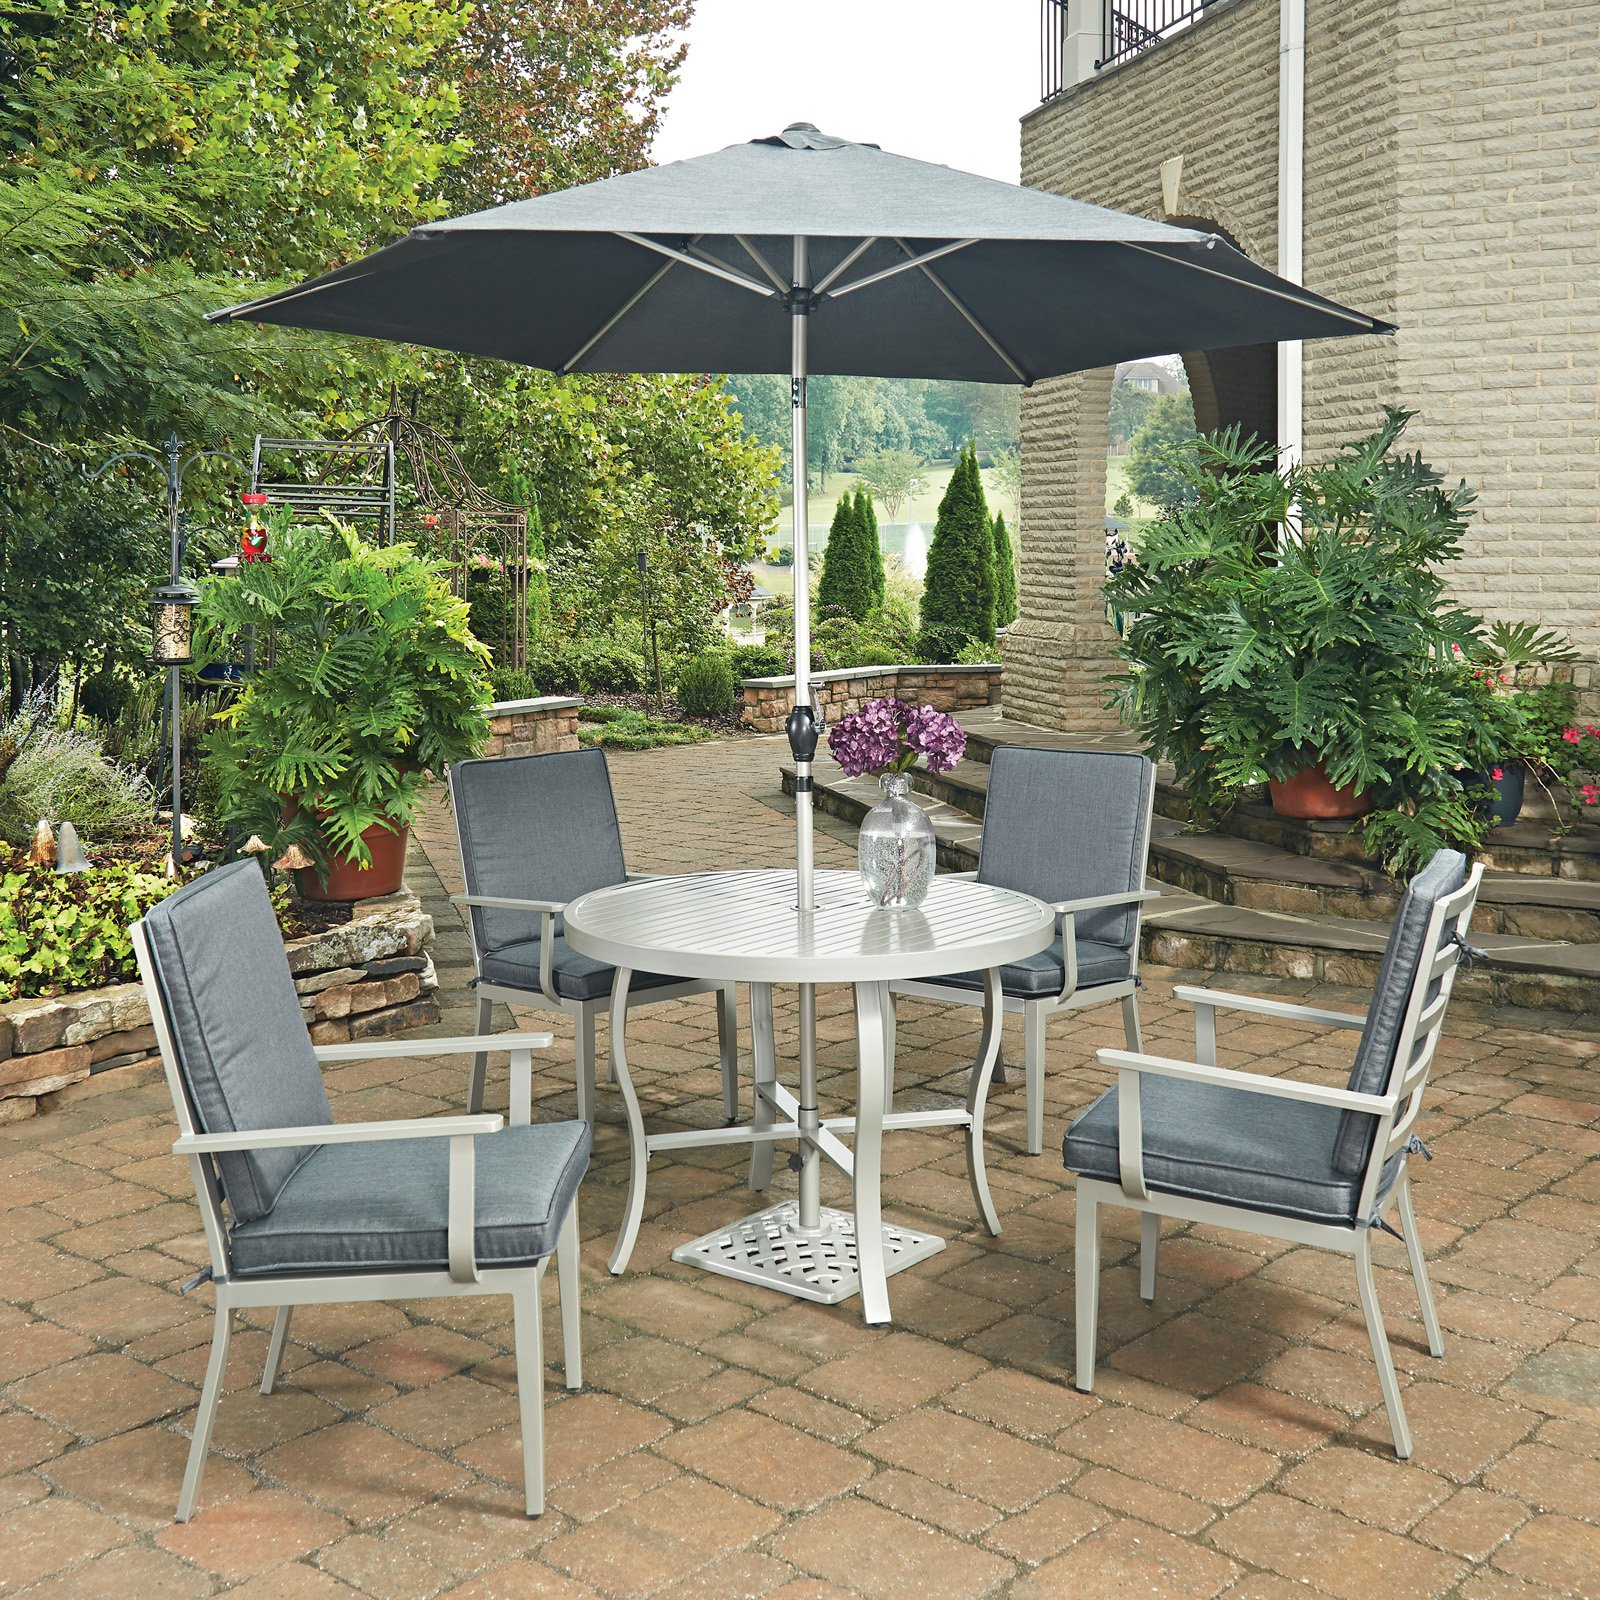 South Beach 7 Pc. Round Outdoor Dining Table& 4 Chairs, with Umbrella & Base